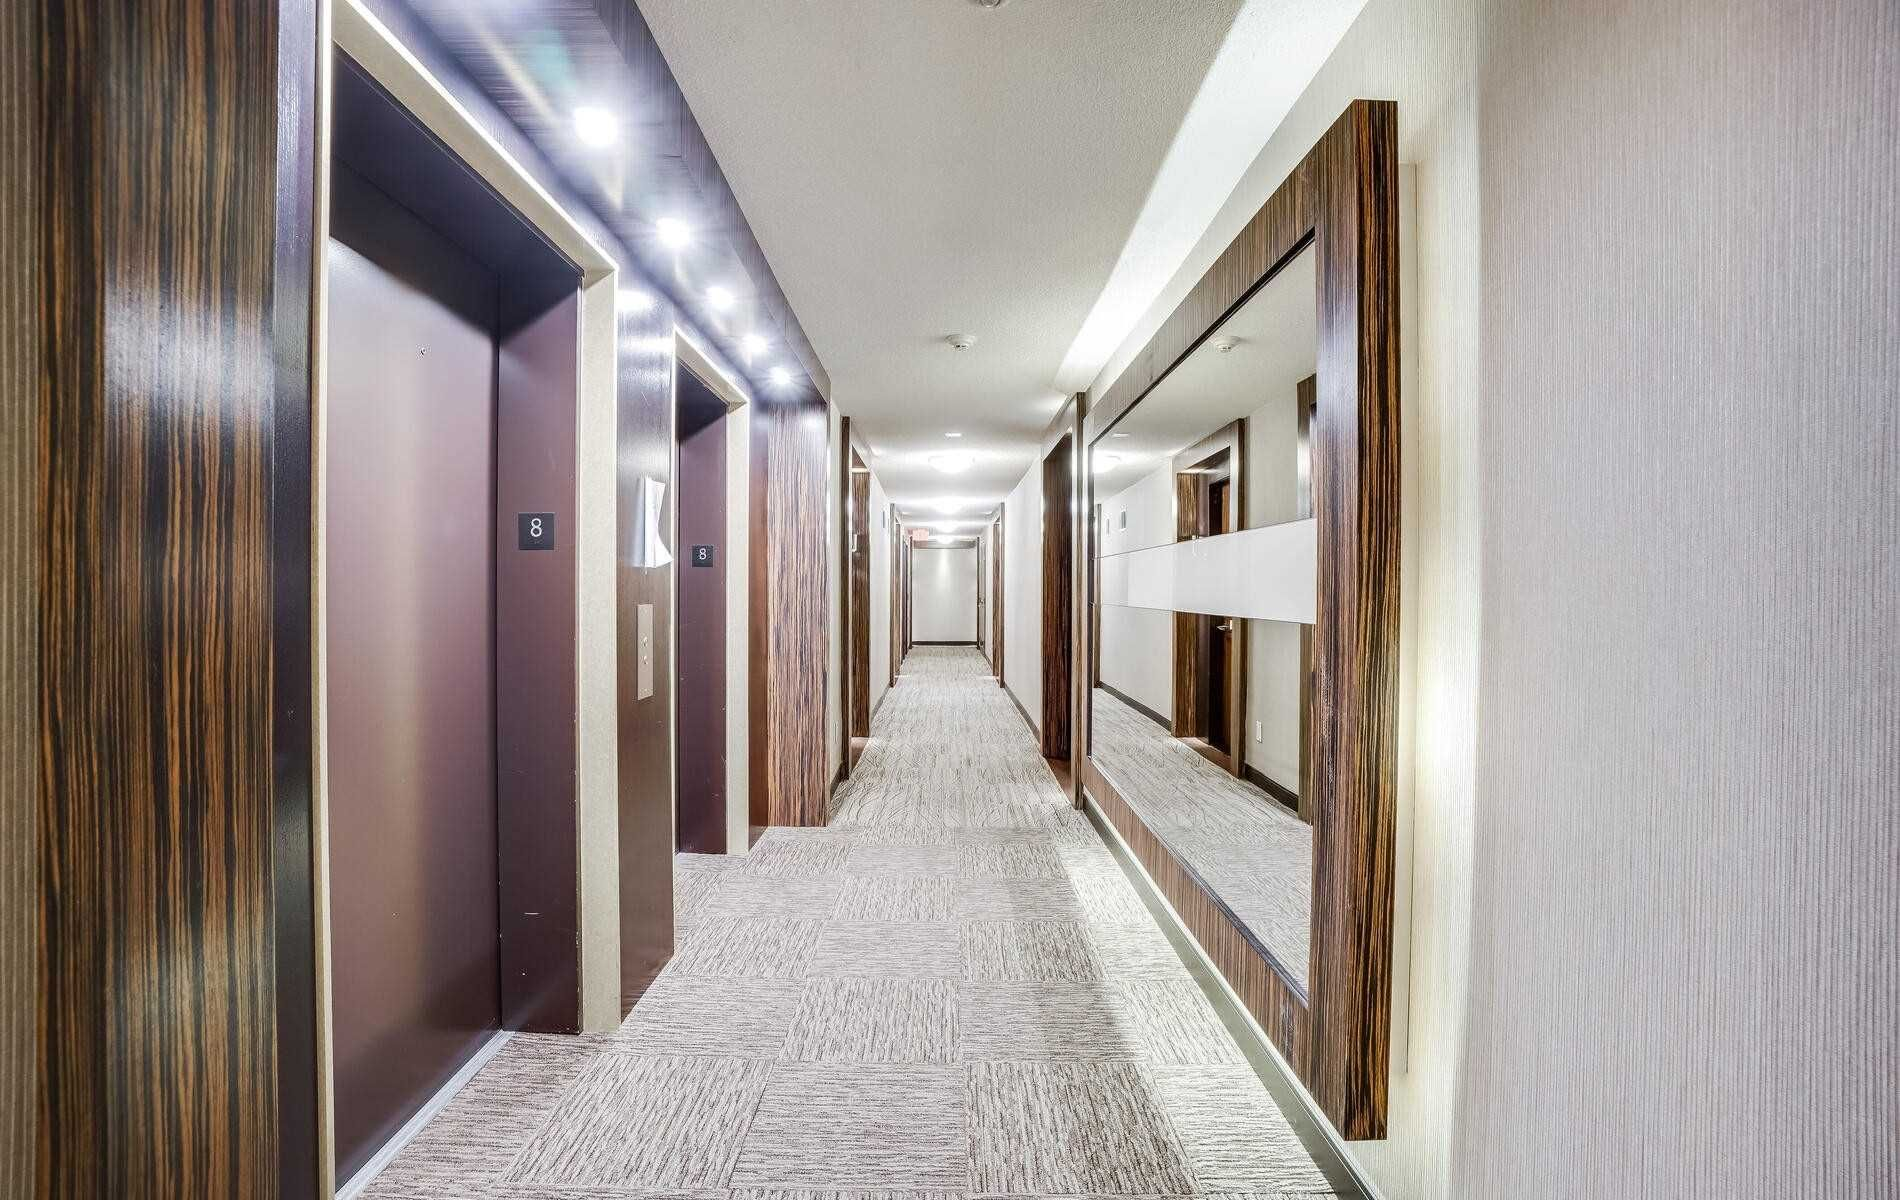 233 South Park Rd, unit 810 for rent in Toronto - image #2